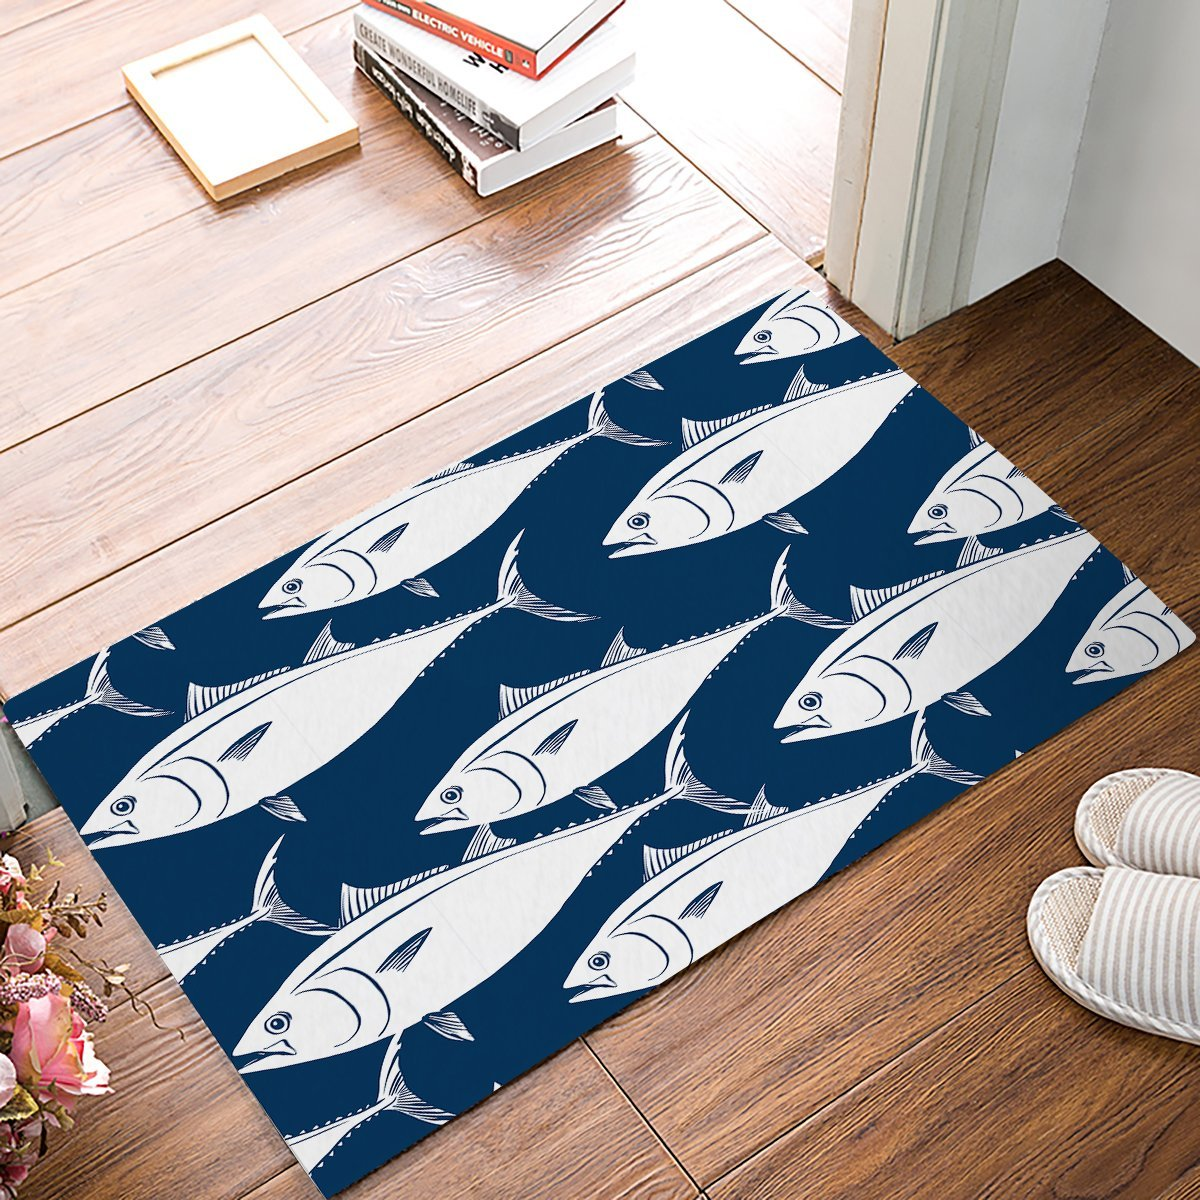 White Kitchen Floor Mats: Navy Blue Background White Fish Door Mats Kitchen Floor